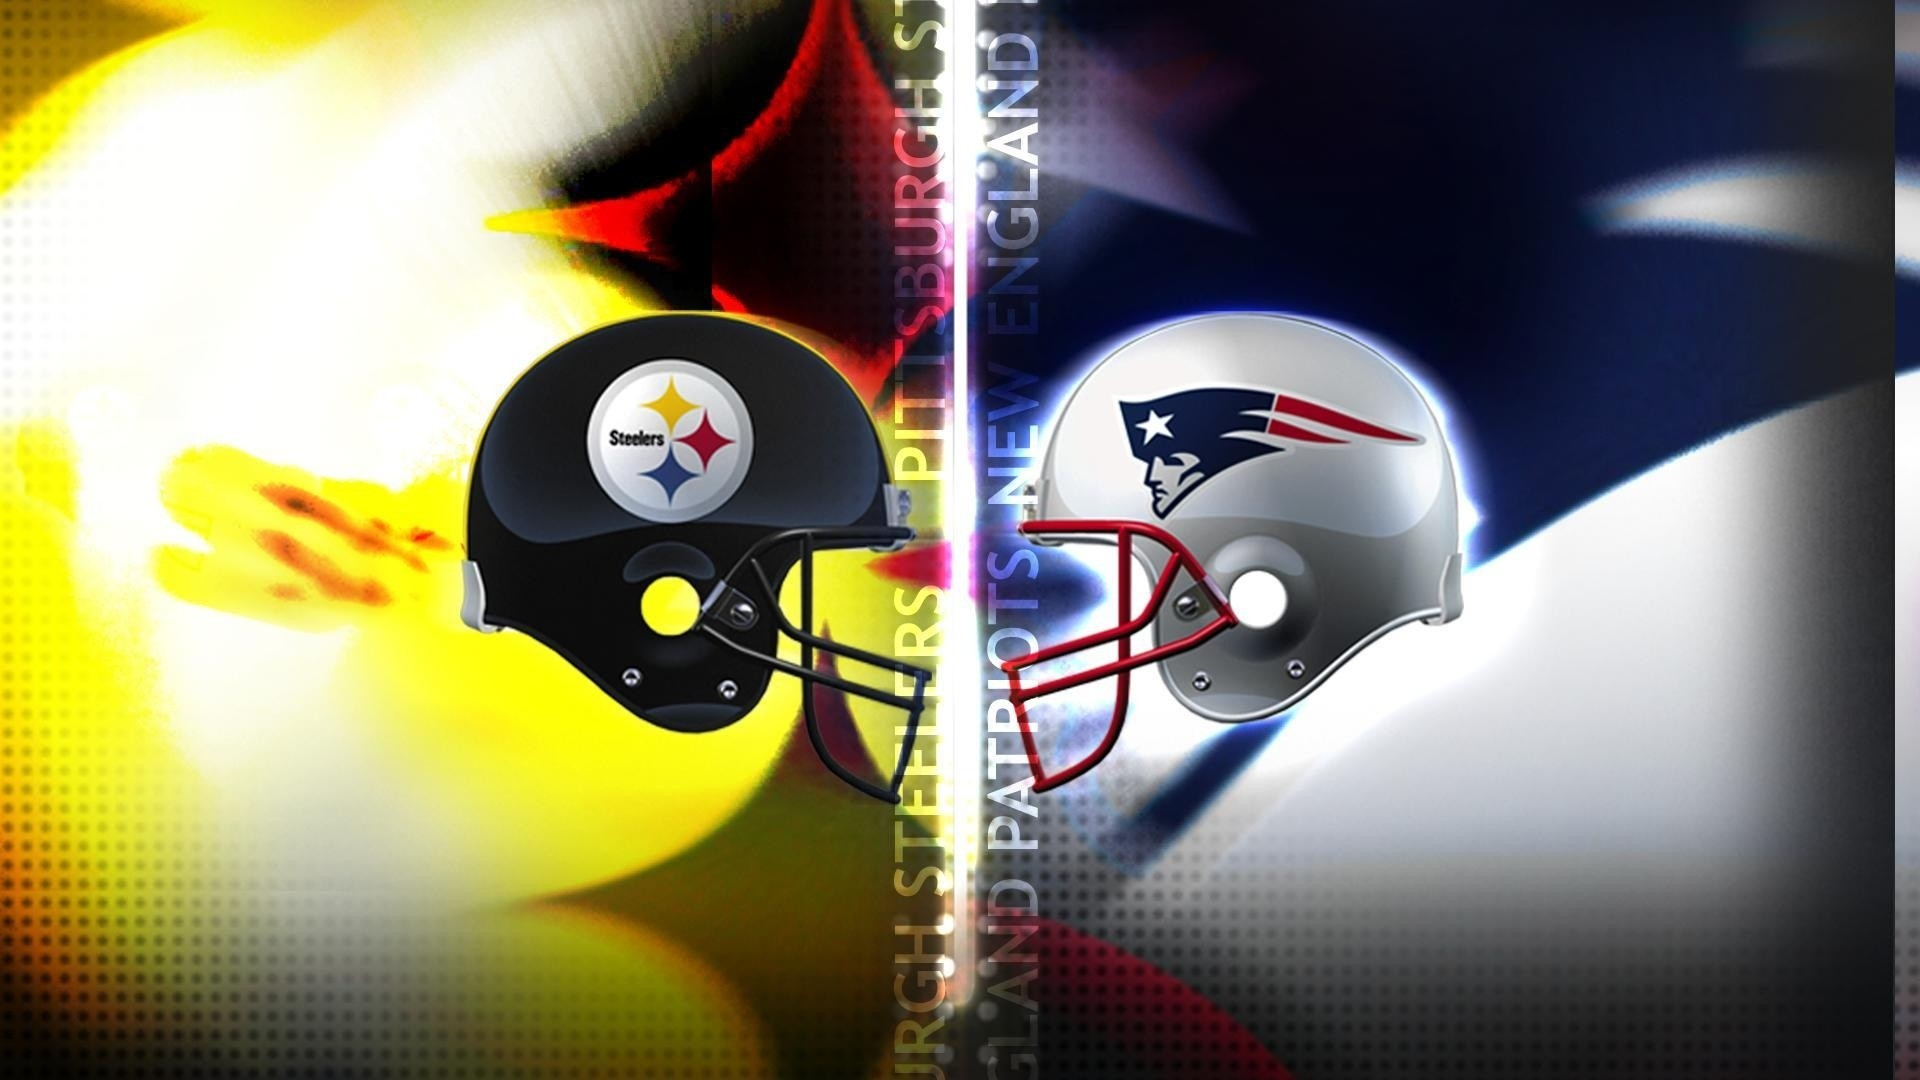 Steelers girl wallpapers 54 images 1920x1080 pittsburgh steelers wallpaper voltagebd Images